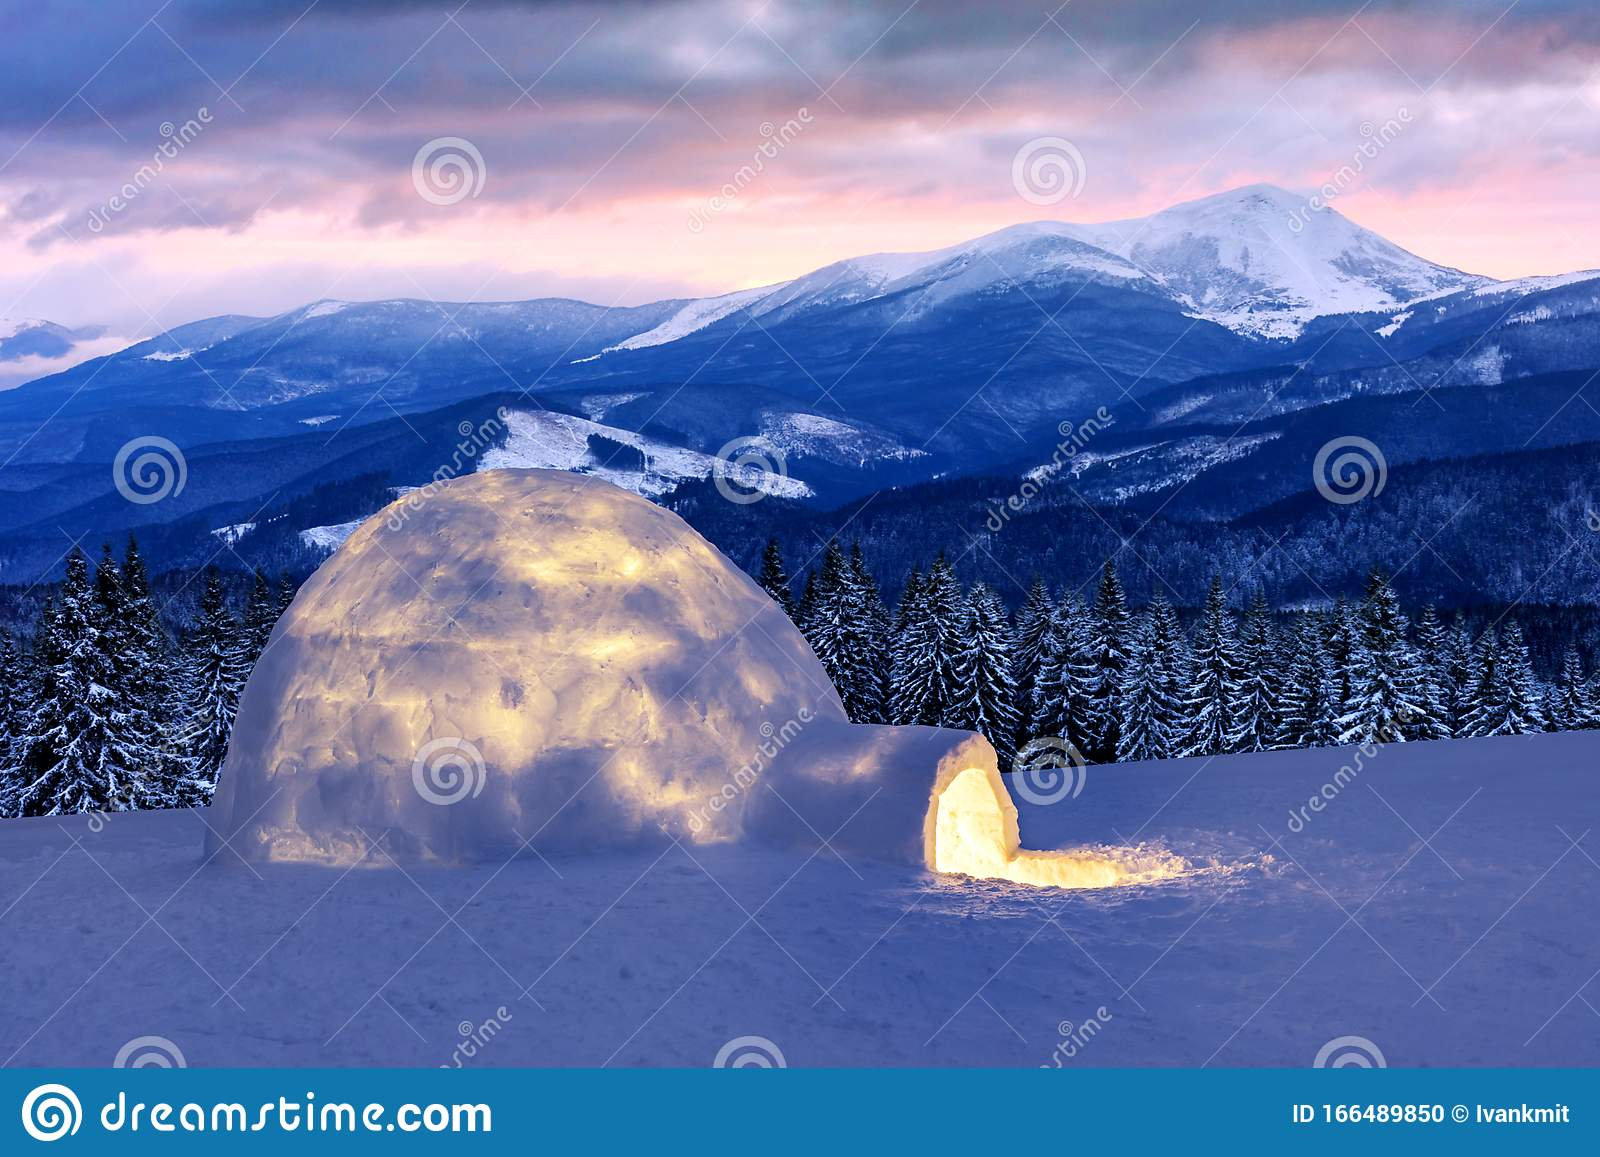 Real Snow Igloo House In The Winter Mountains Stock Photo Image Of Construction Backgrounds 166489850